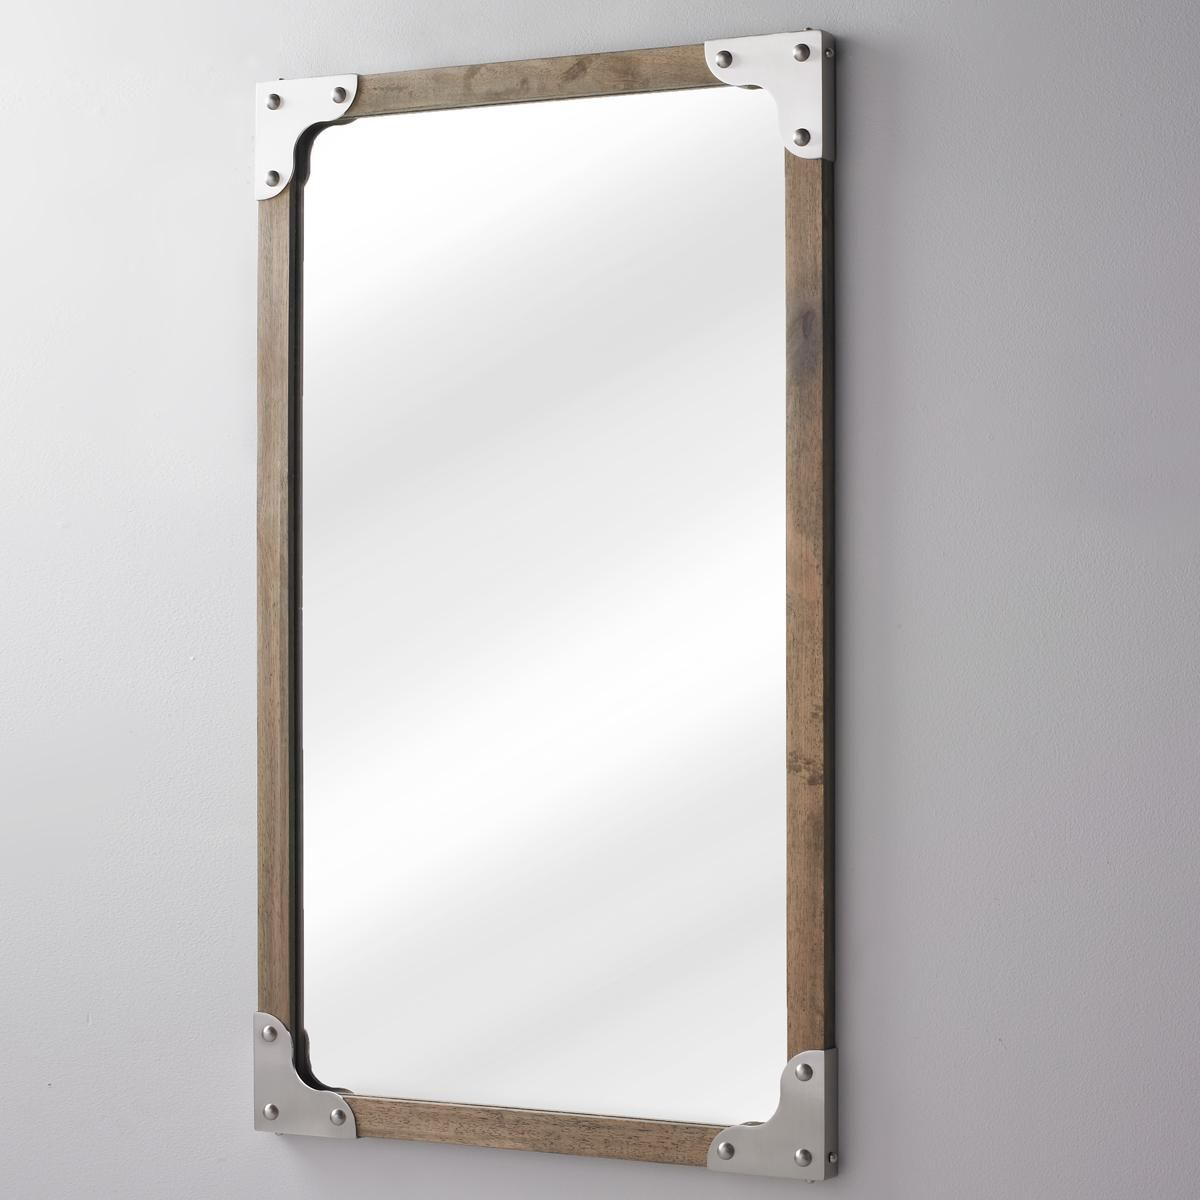 Rivet And Wood Industrial Style Mirror | Weathered Woods Intended For Koeller Industrial Metal Wall Mirrors (View 8 of 20)